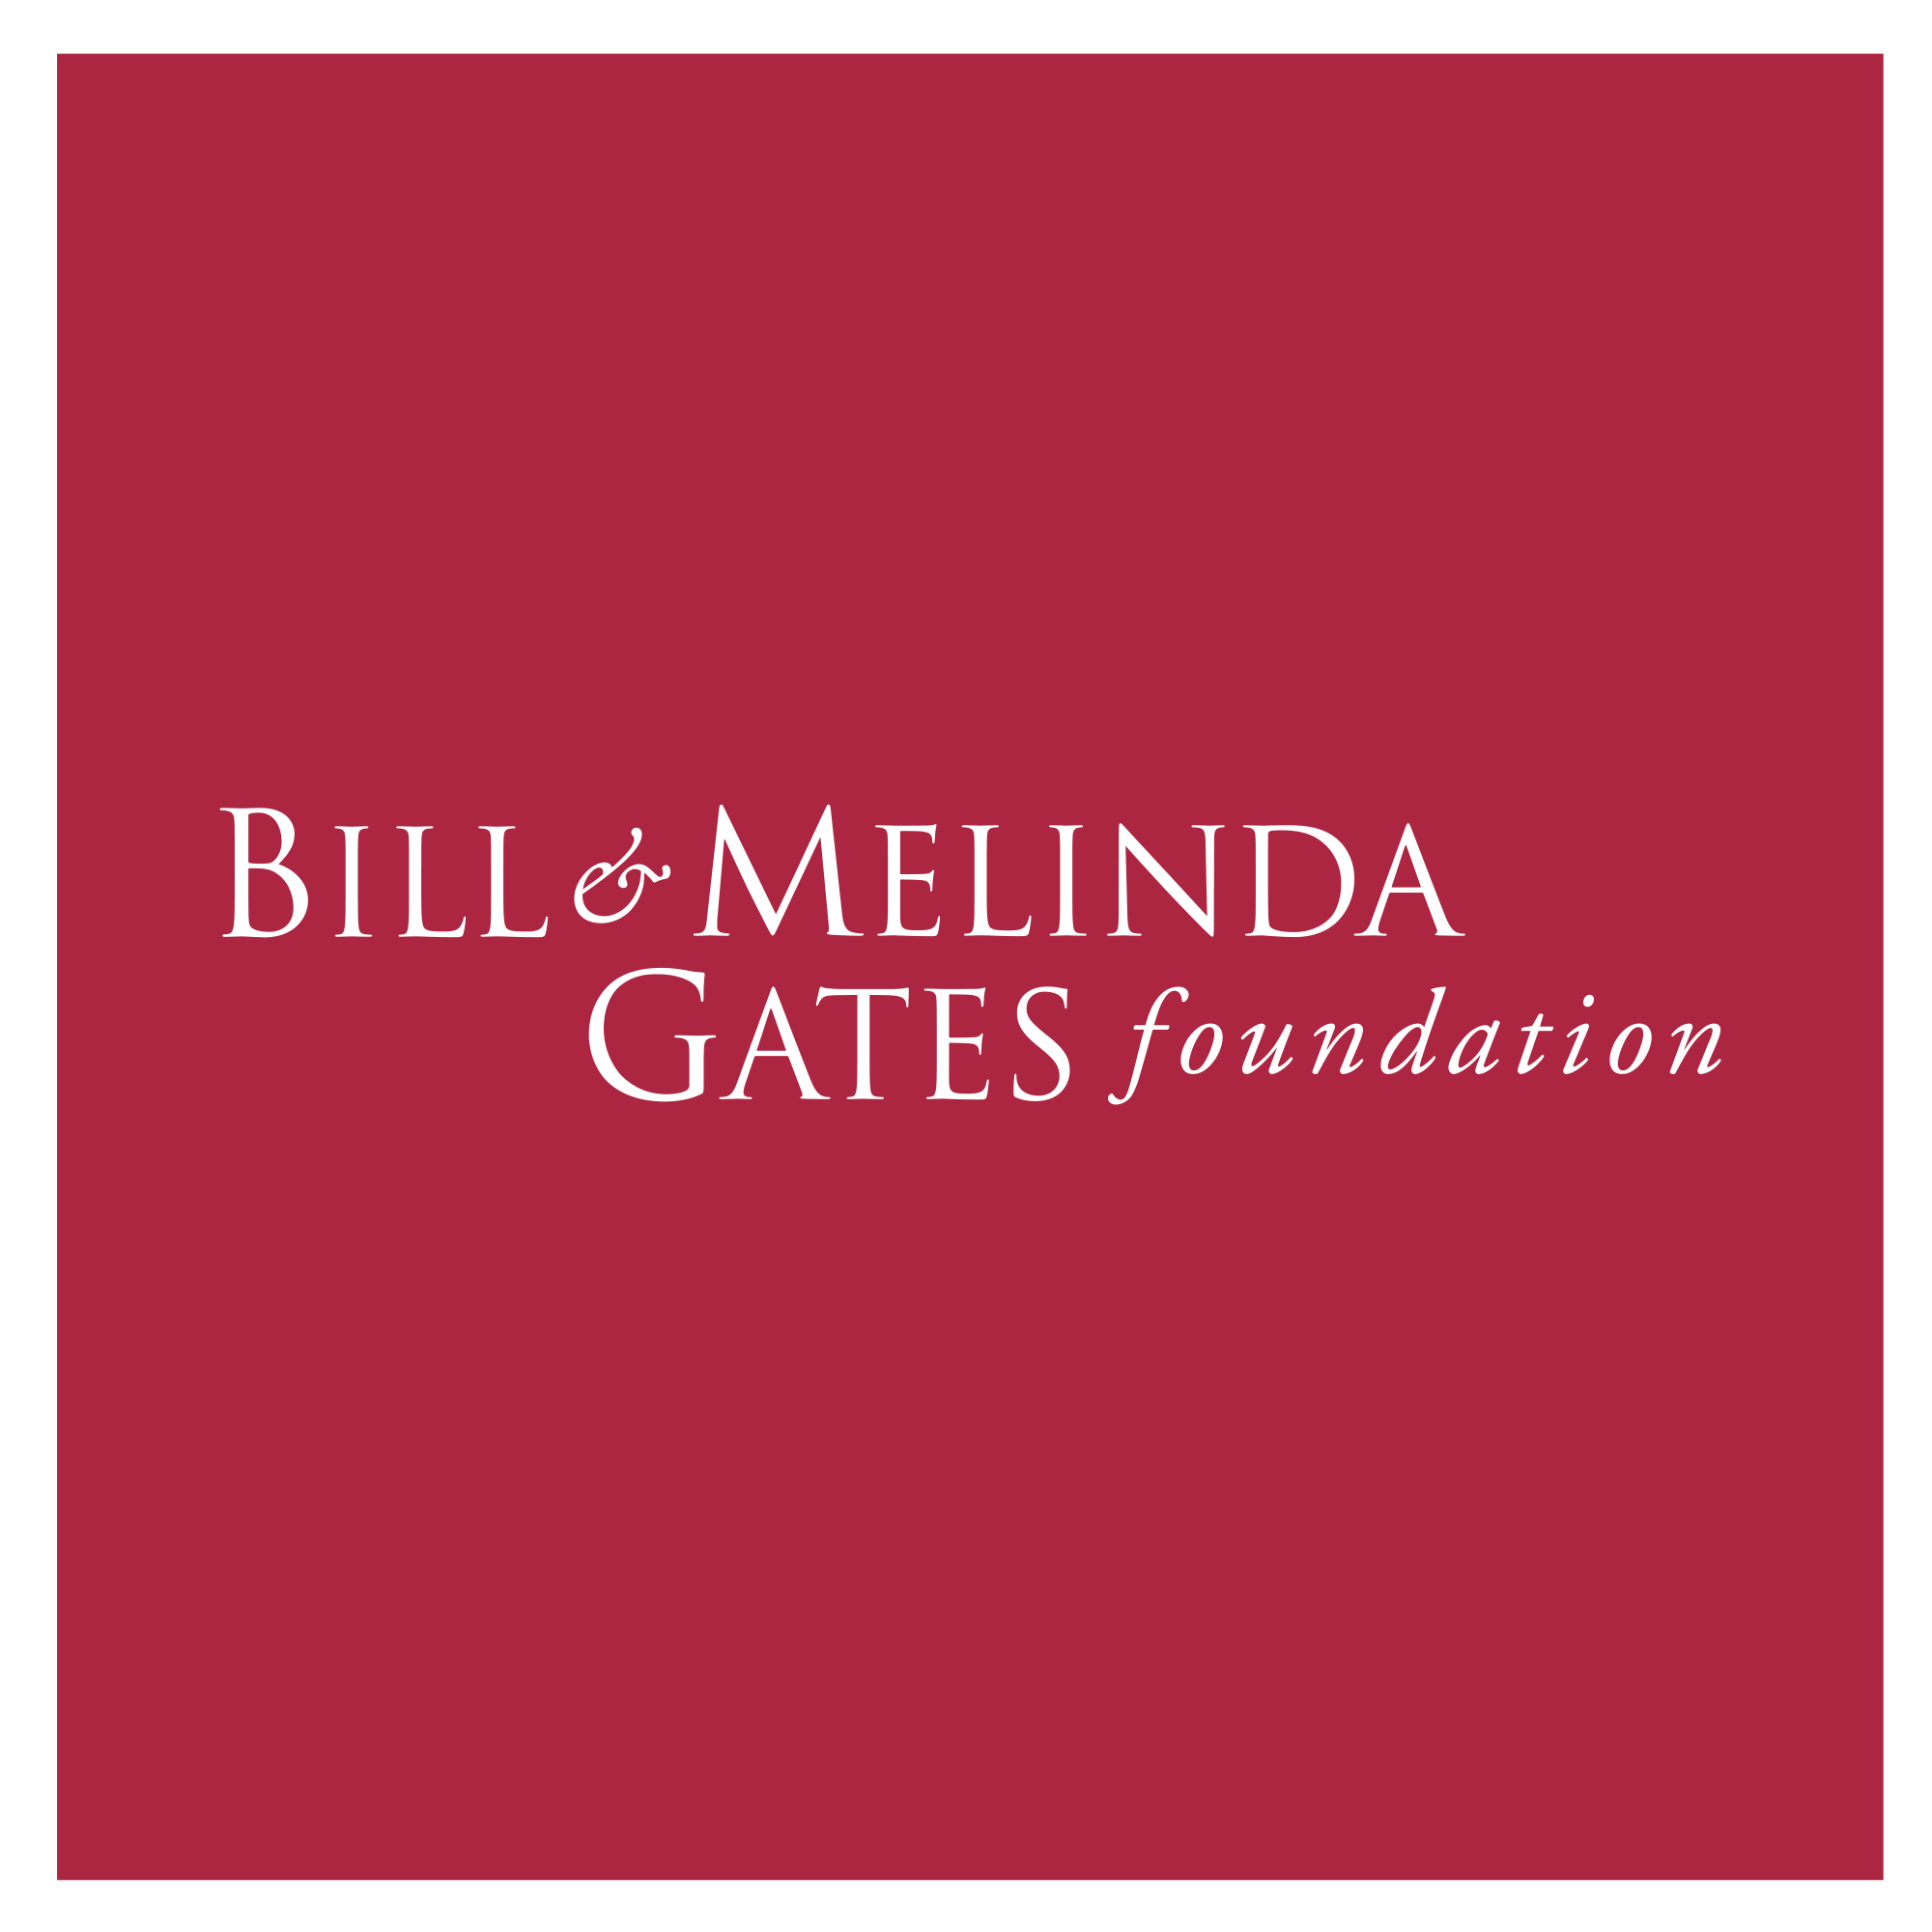 Bill and Melinda Gates Foundation